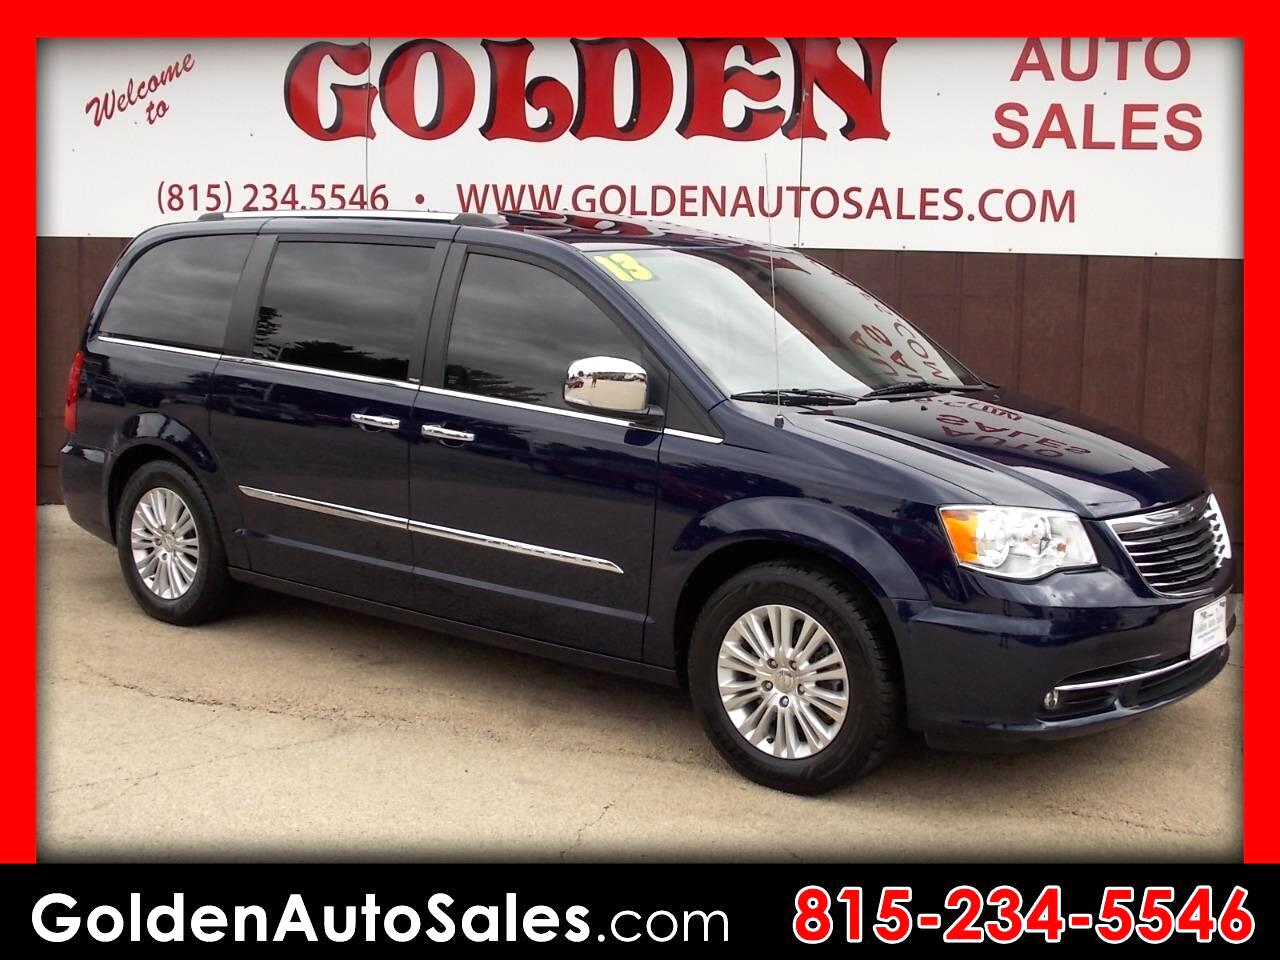 2013 Chrysler Town & Country 4dr Wgn Limited